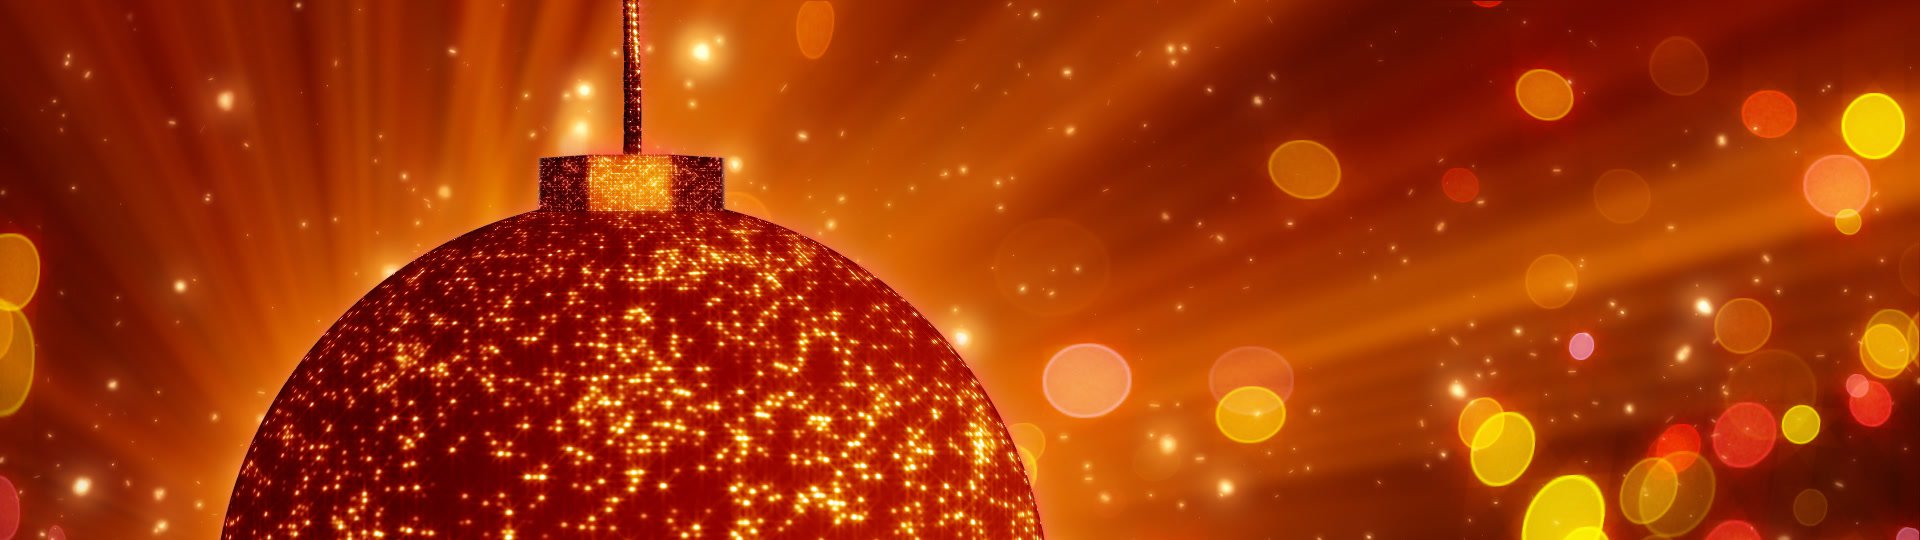 Orange christmas ball close-up and lights loop | computer generated seamless loop abstract background. orange christmas rotating balls close-up and flying glitter particles. Progressive scan - ID:12232